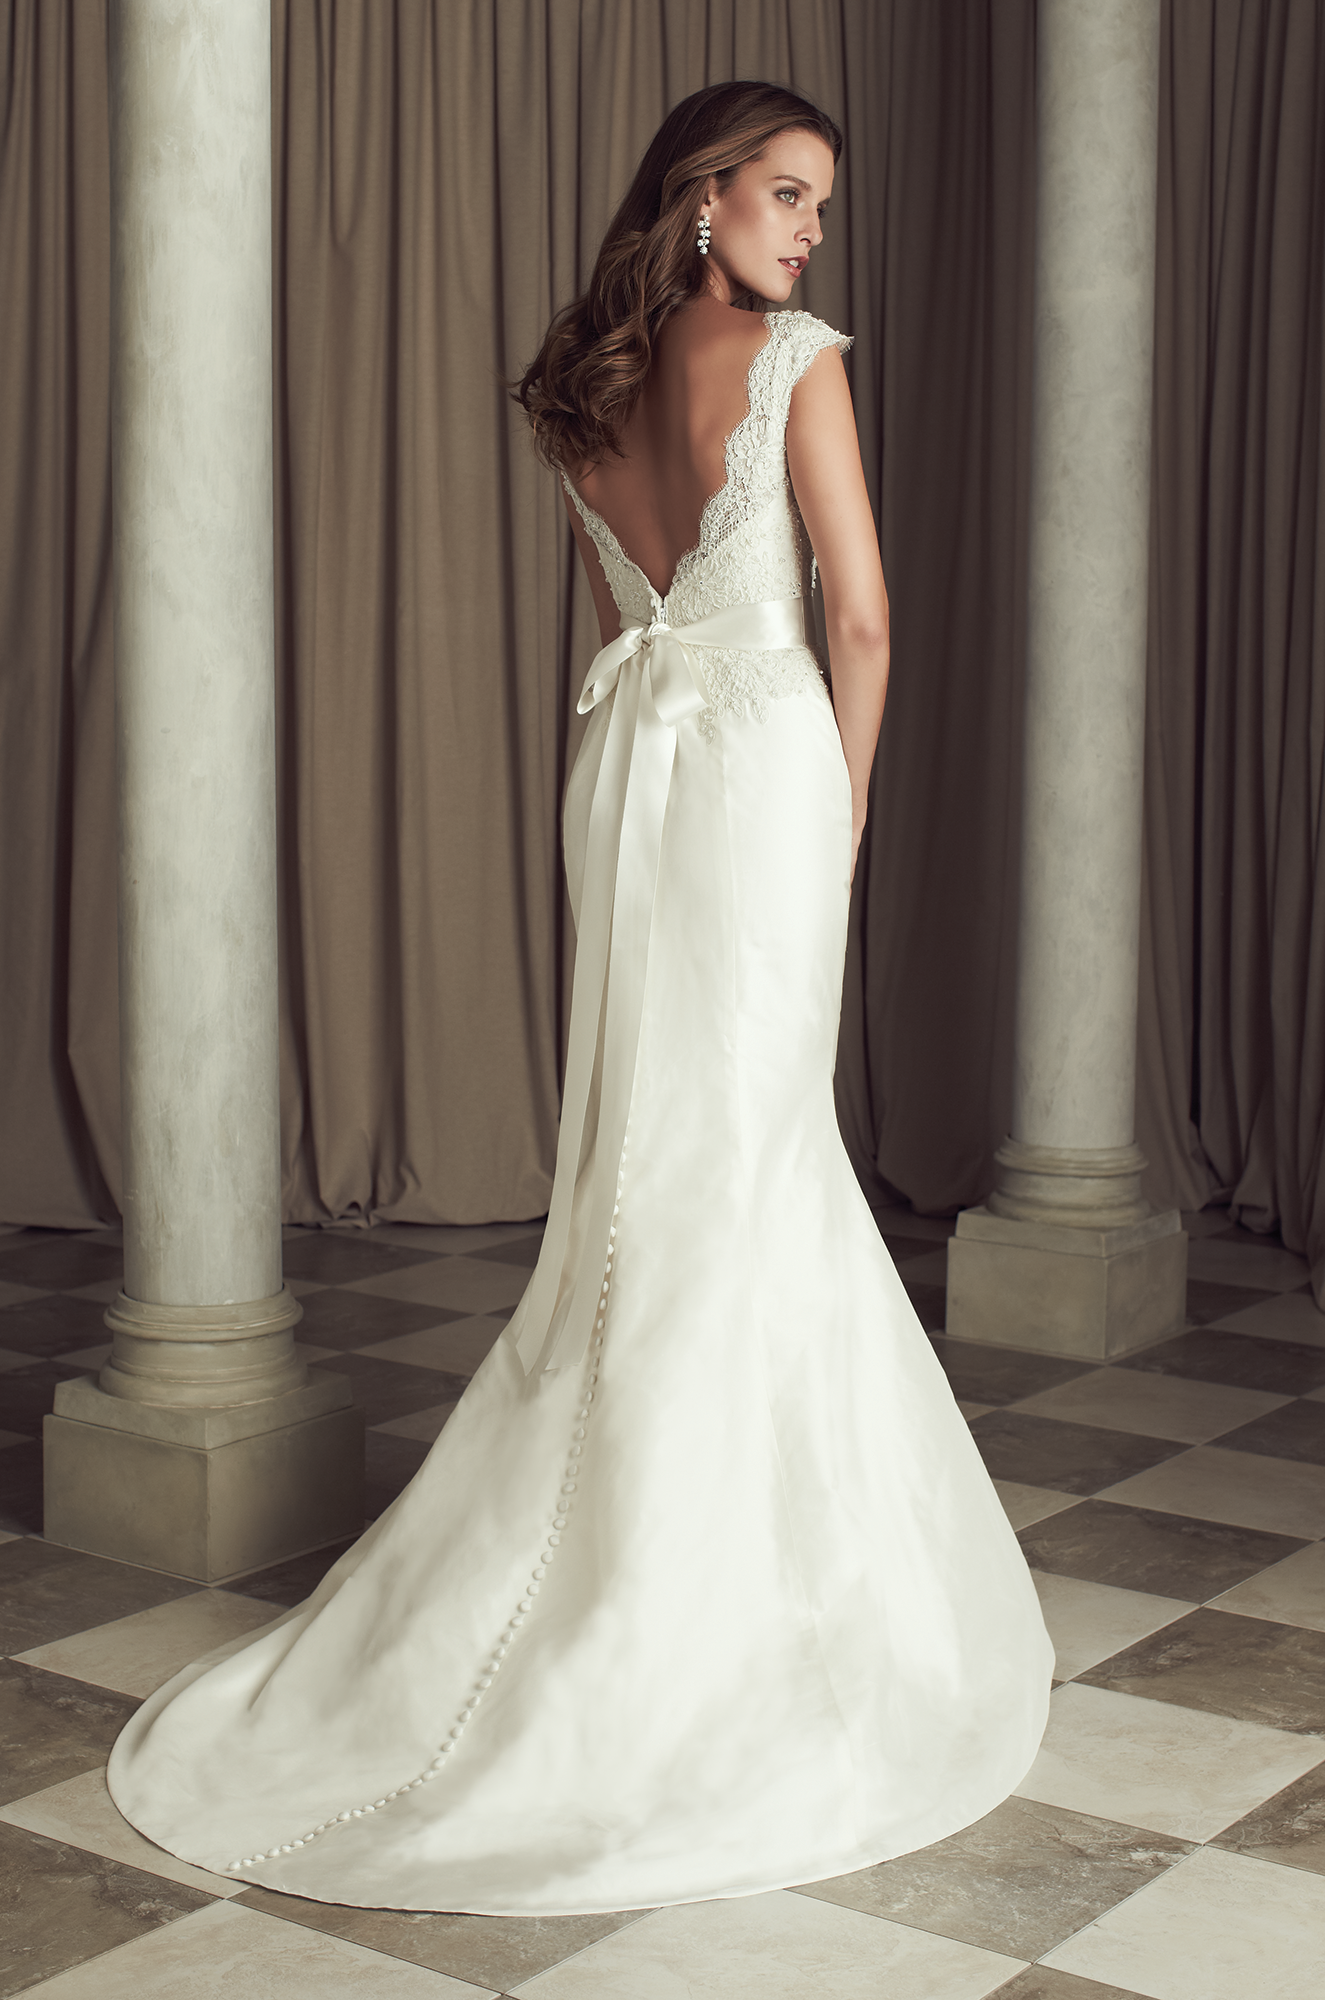 Paloma Re-embroidered Lace and Silk Dupioni Wedding Dress. V-neck beaded lace bodice with cap sleeves. Lace cascading onto skirt. Fit and flare Dupioni skirt with removable ribbon and flower detail at natural waist. Covered buttons over zipper to hem. Sweep Train. Style 4460. #PalomaBlanca #PalomaGown Paloma Blanca Wedding Gown